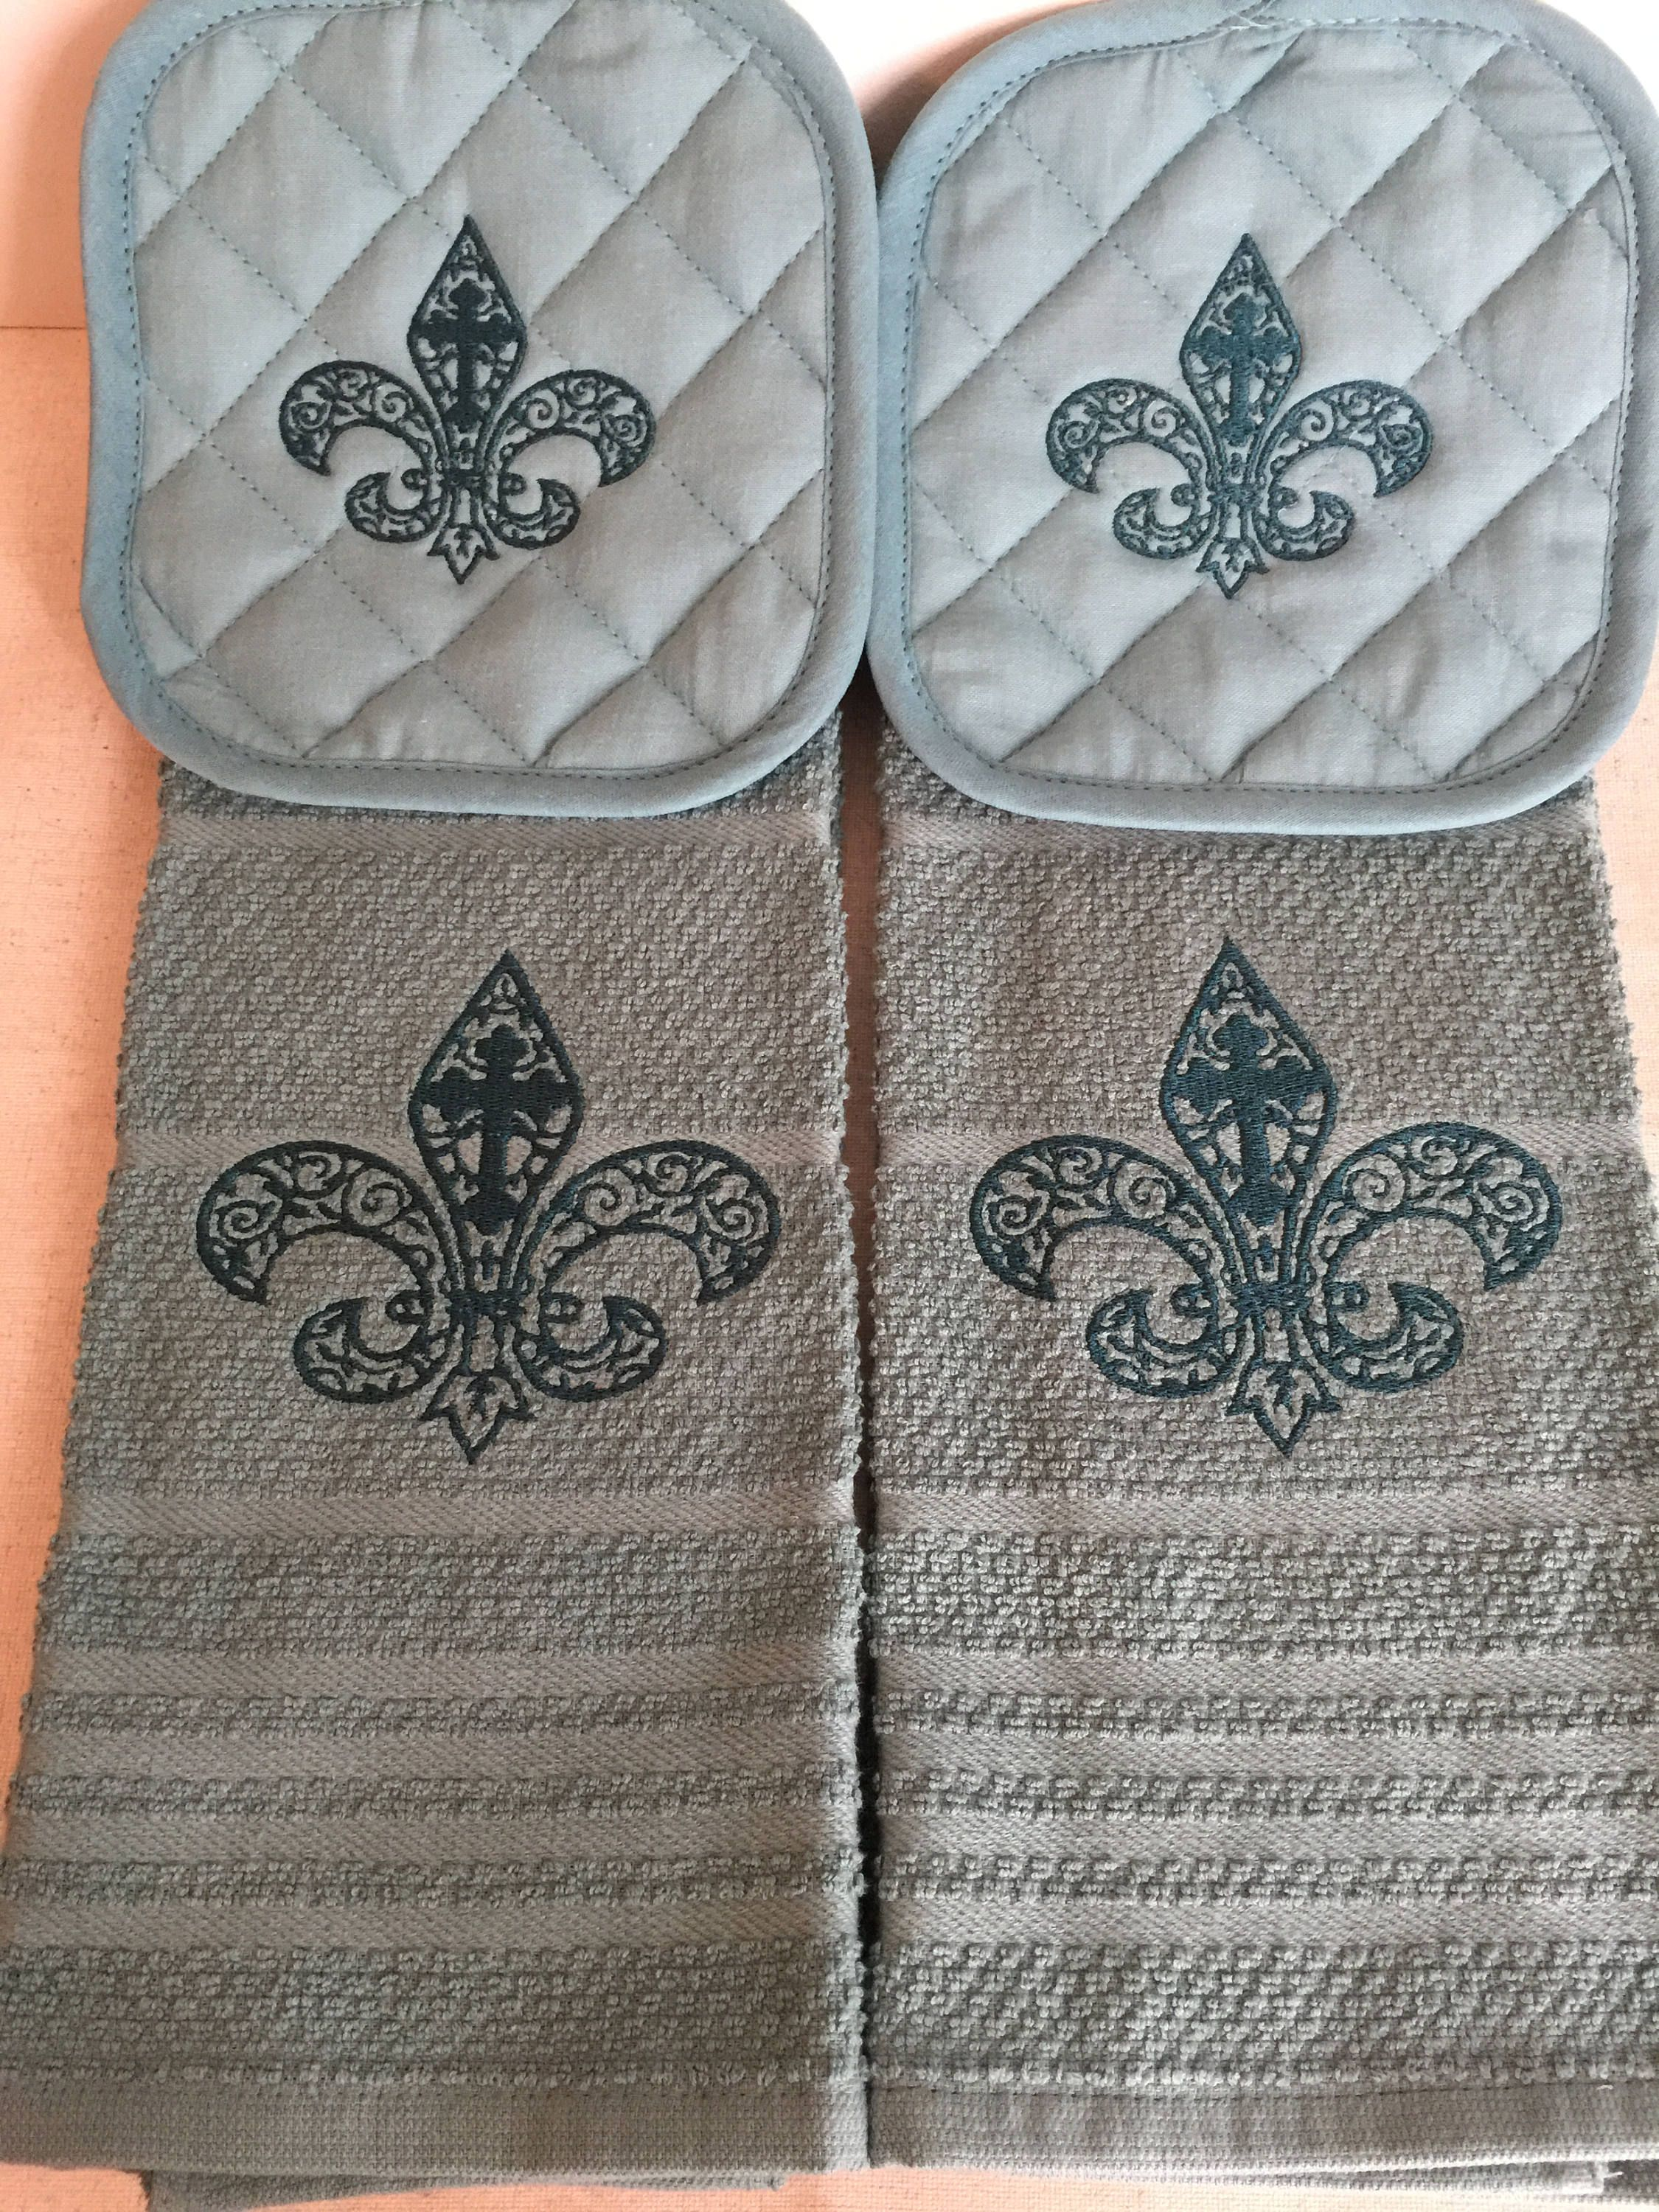 2 Embroidered Fleur De Lis Kitchen Towel And 2 Matching Pot